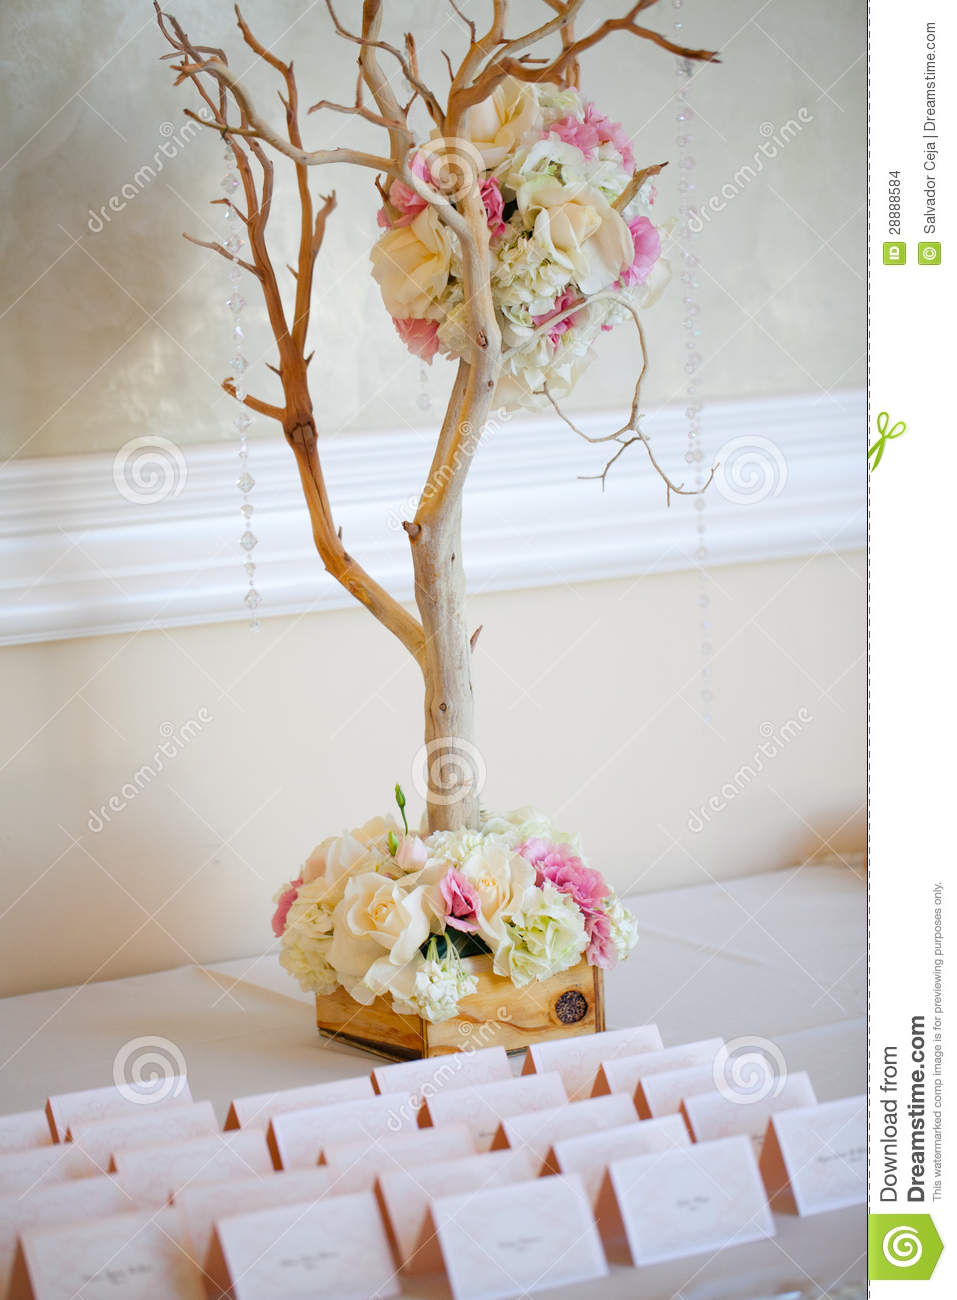 Floral Decor: Wedding Decor Table Setting And Flowers Stock Images